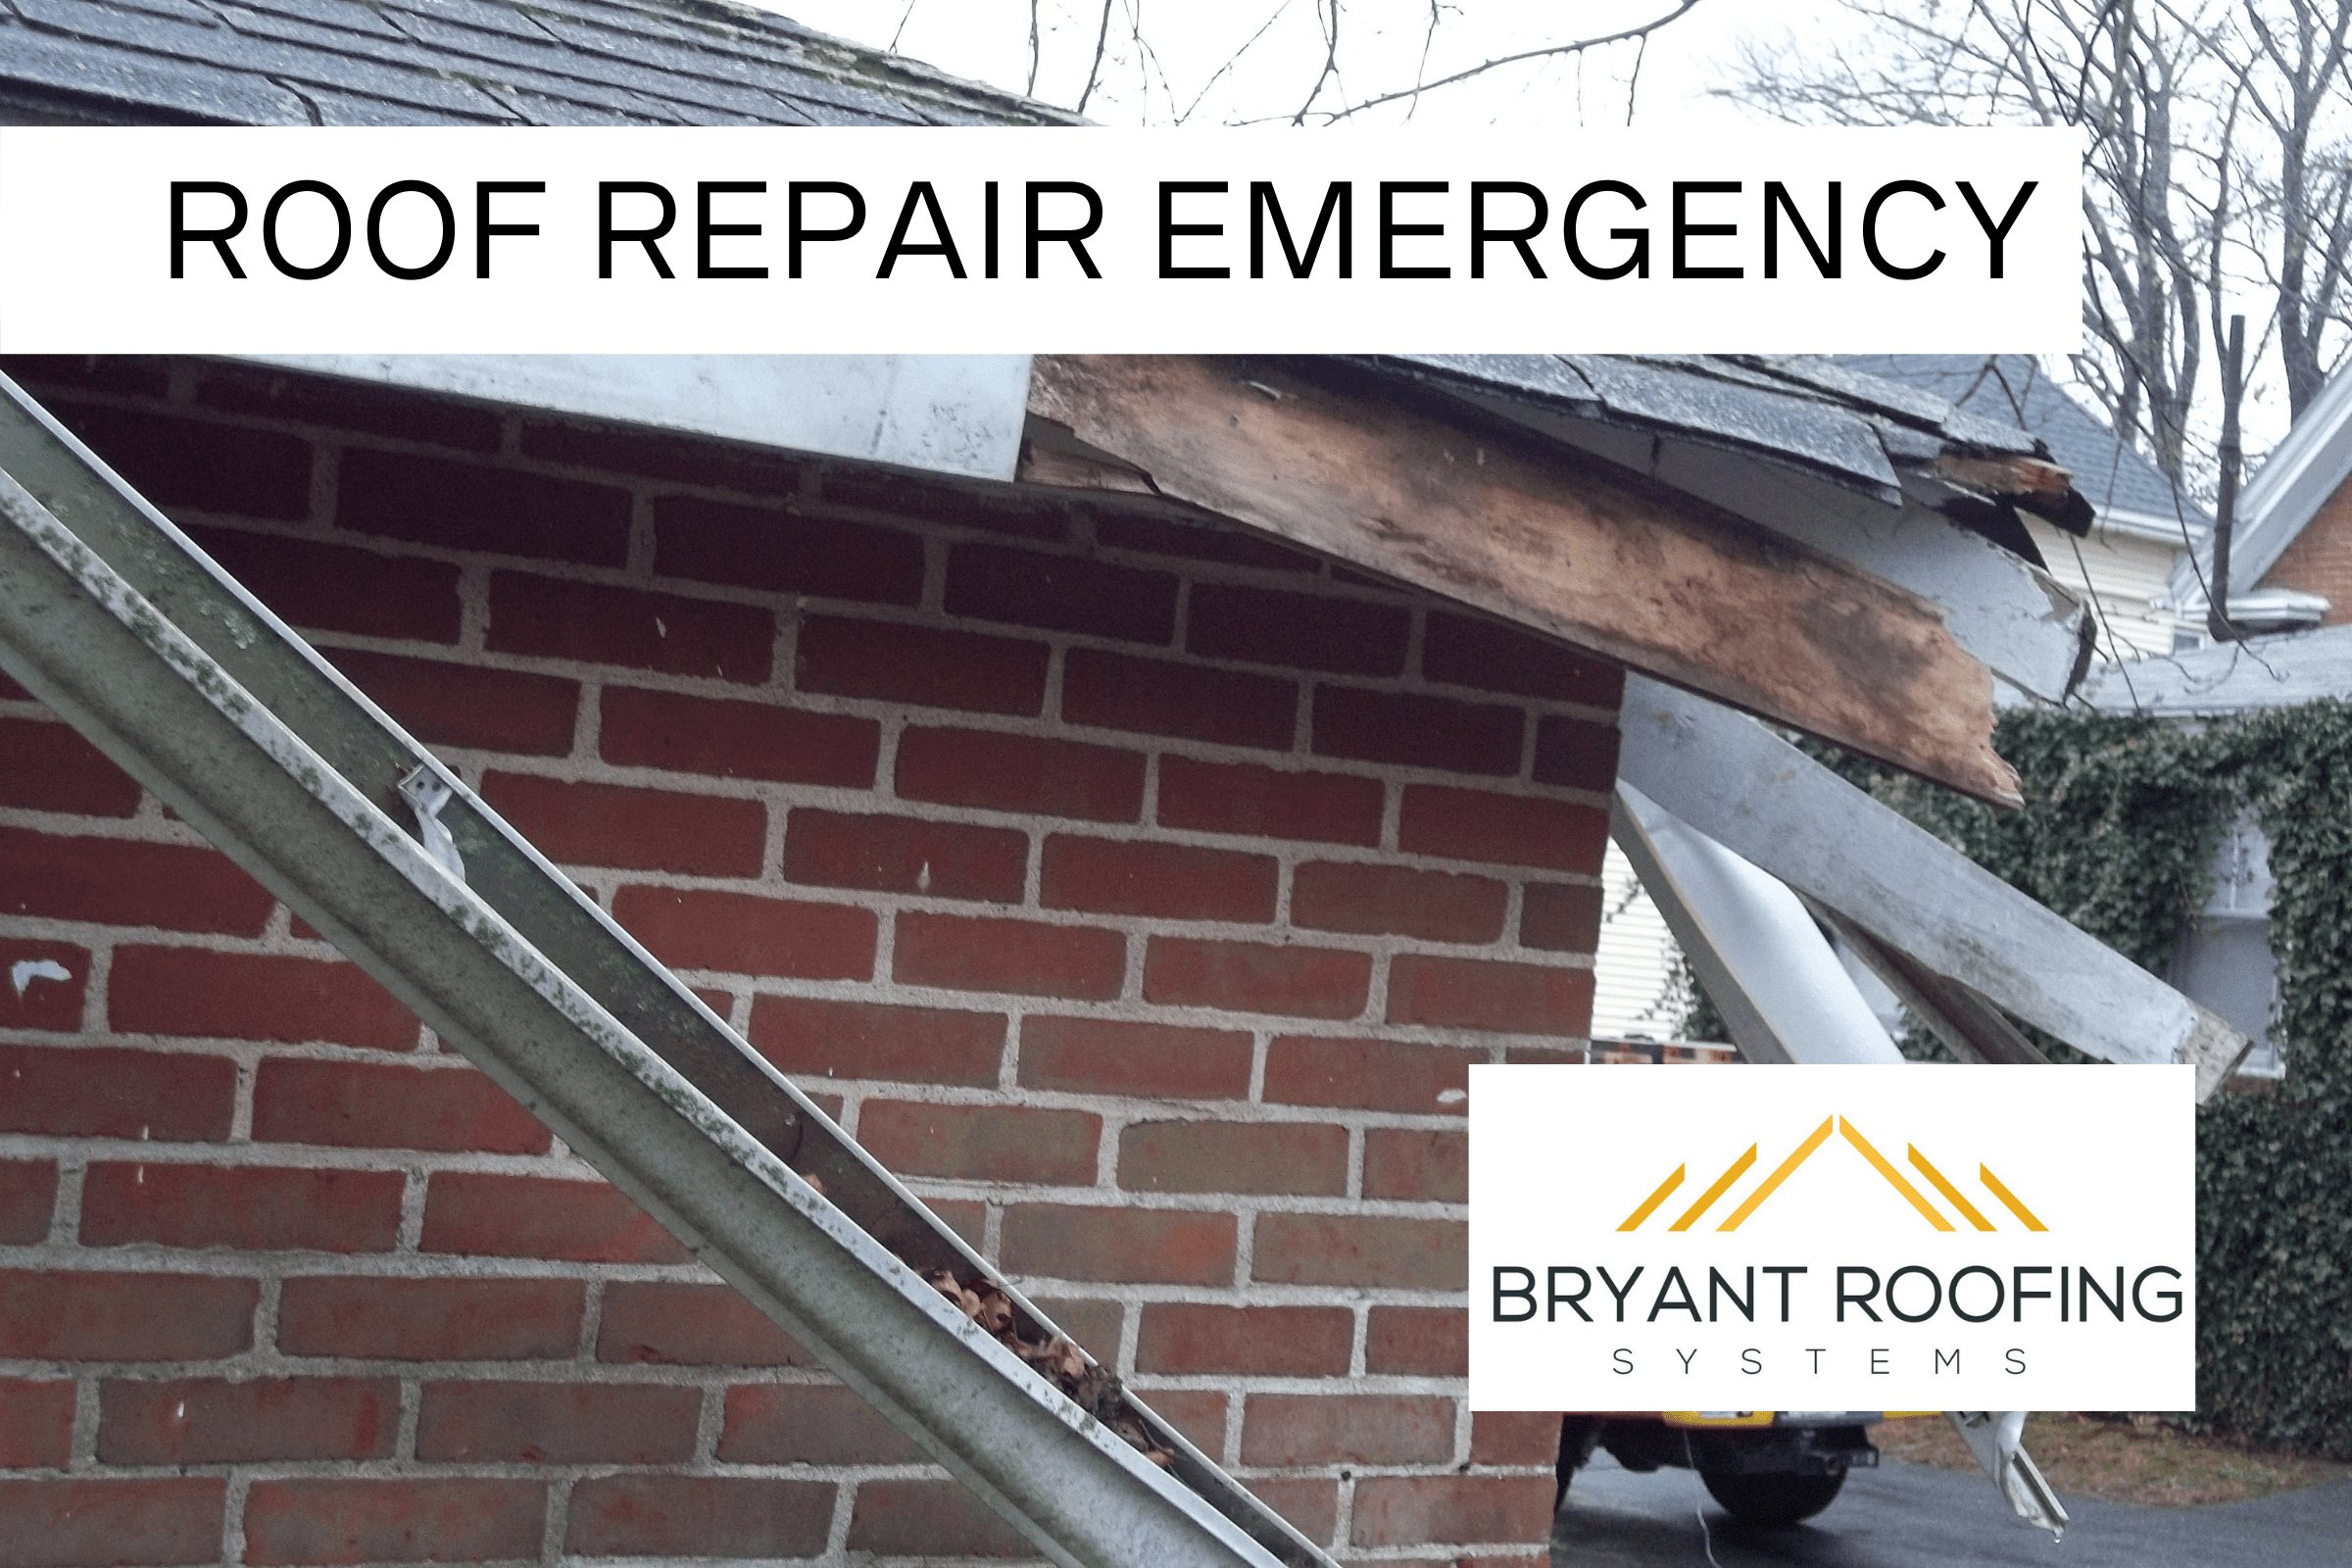 BROKEN ROOF REPAIR EMERGENCY